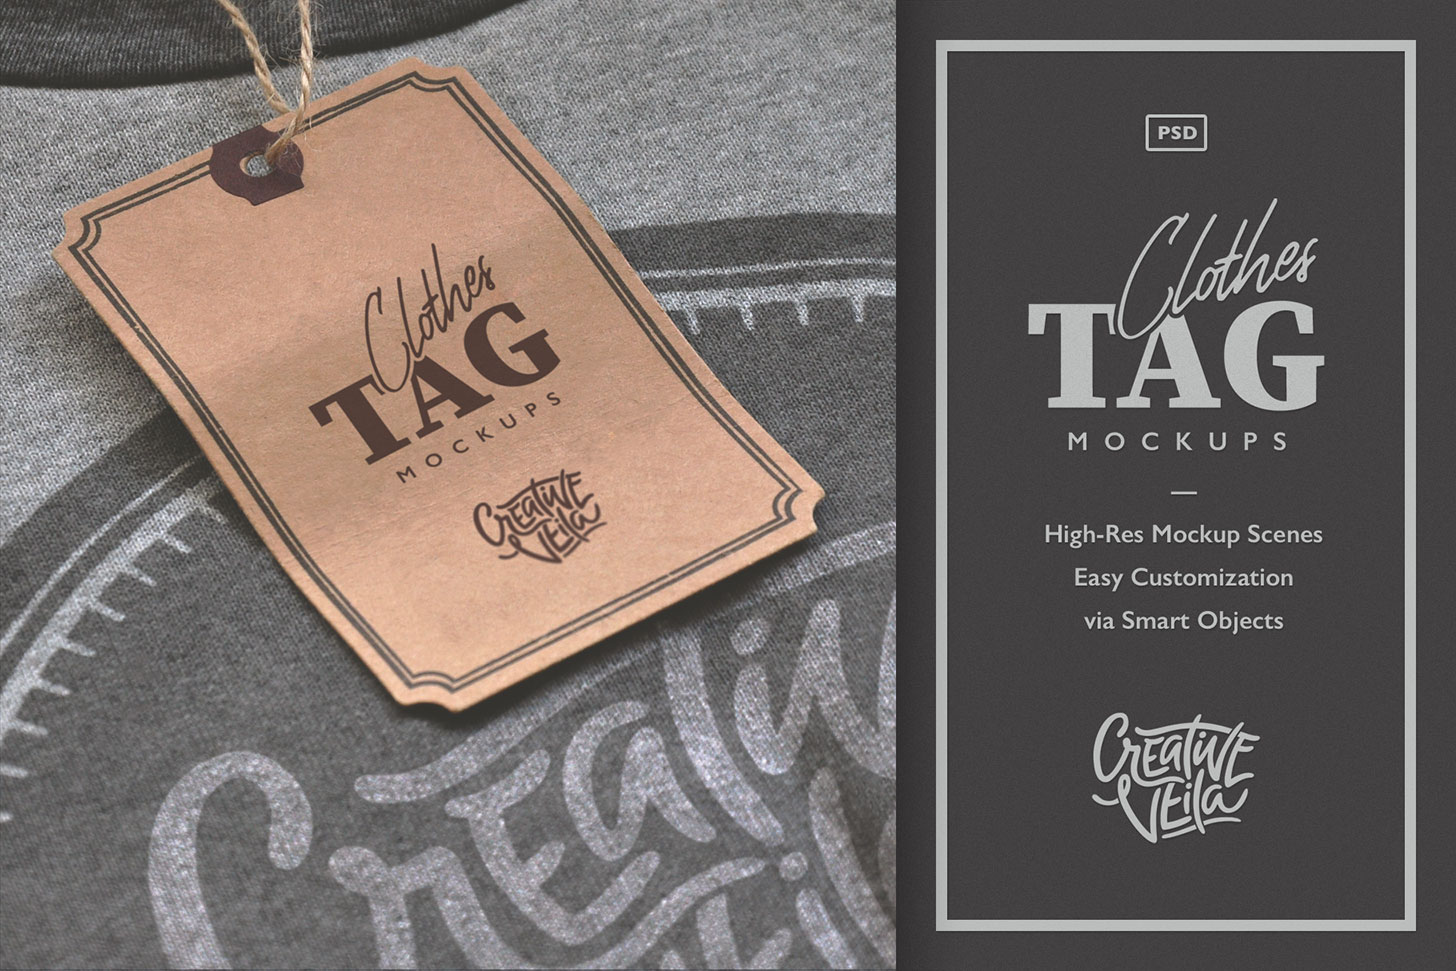 Download Clothes Tag Psd Mockups In Apparel Mockups On Yellow Images Creative Store PSD Mockup Templates